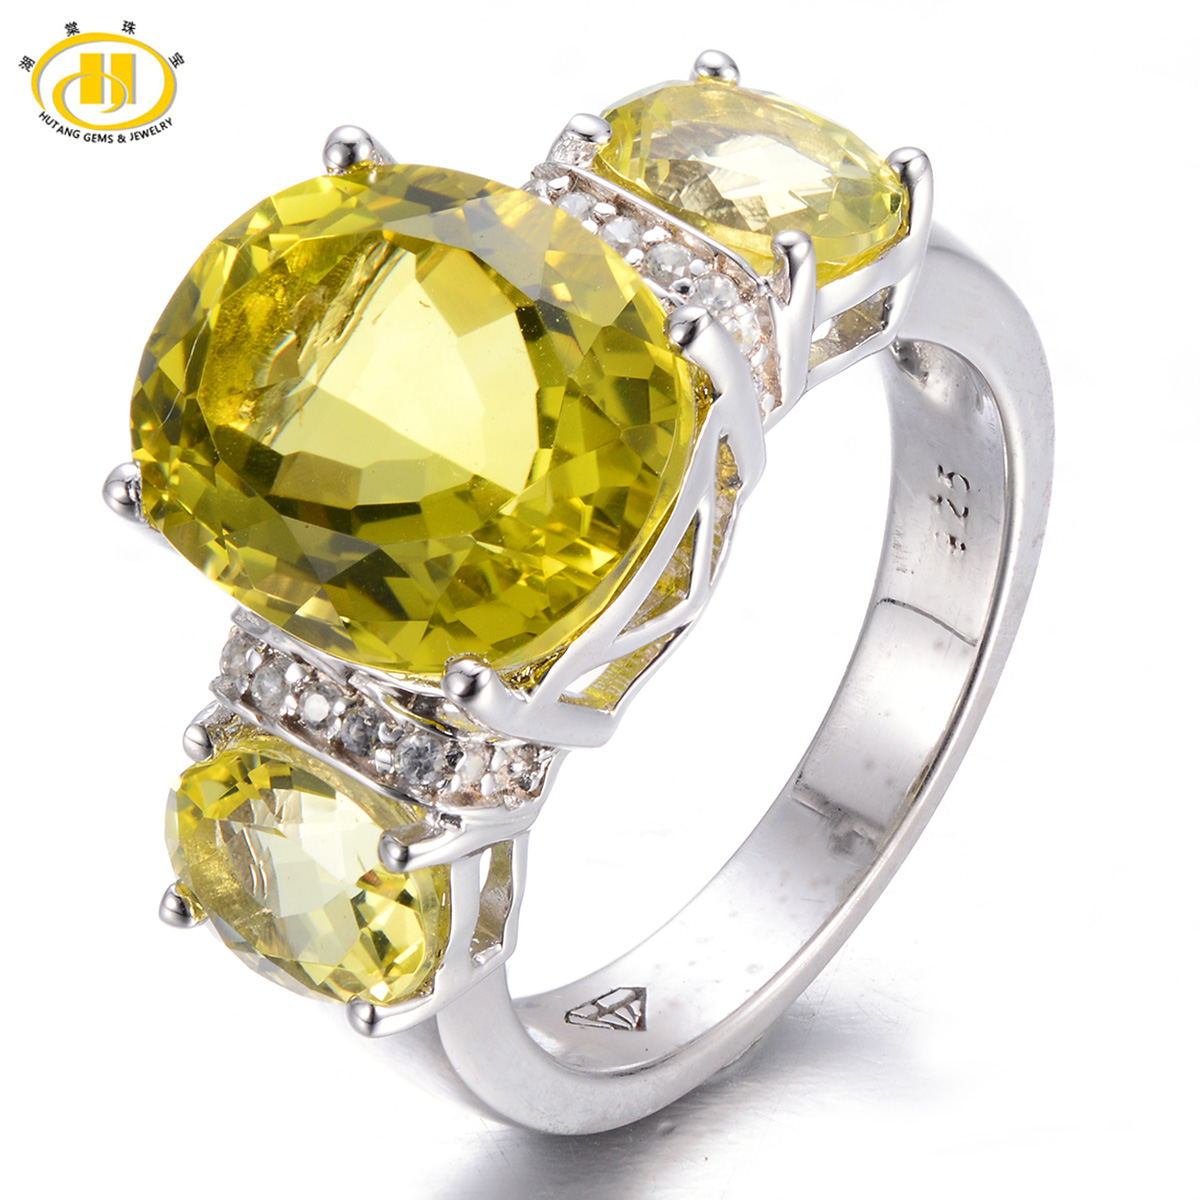 Hutang 5198ct Natural Lemon Quartz Solid 925 Sterling Silver Cocktail Ring  Gemstone Fine Jewelry Women's